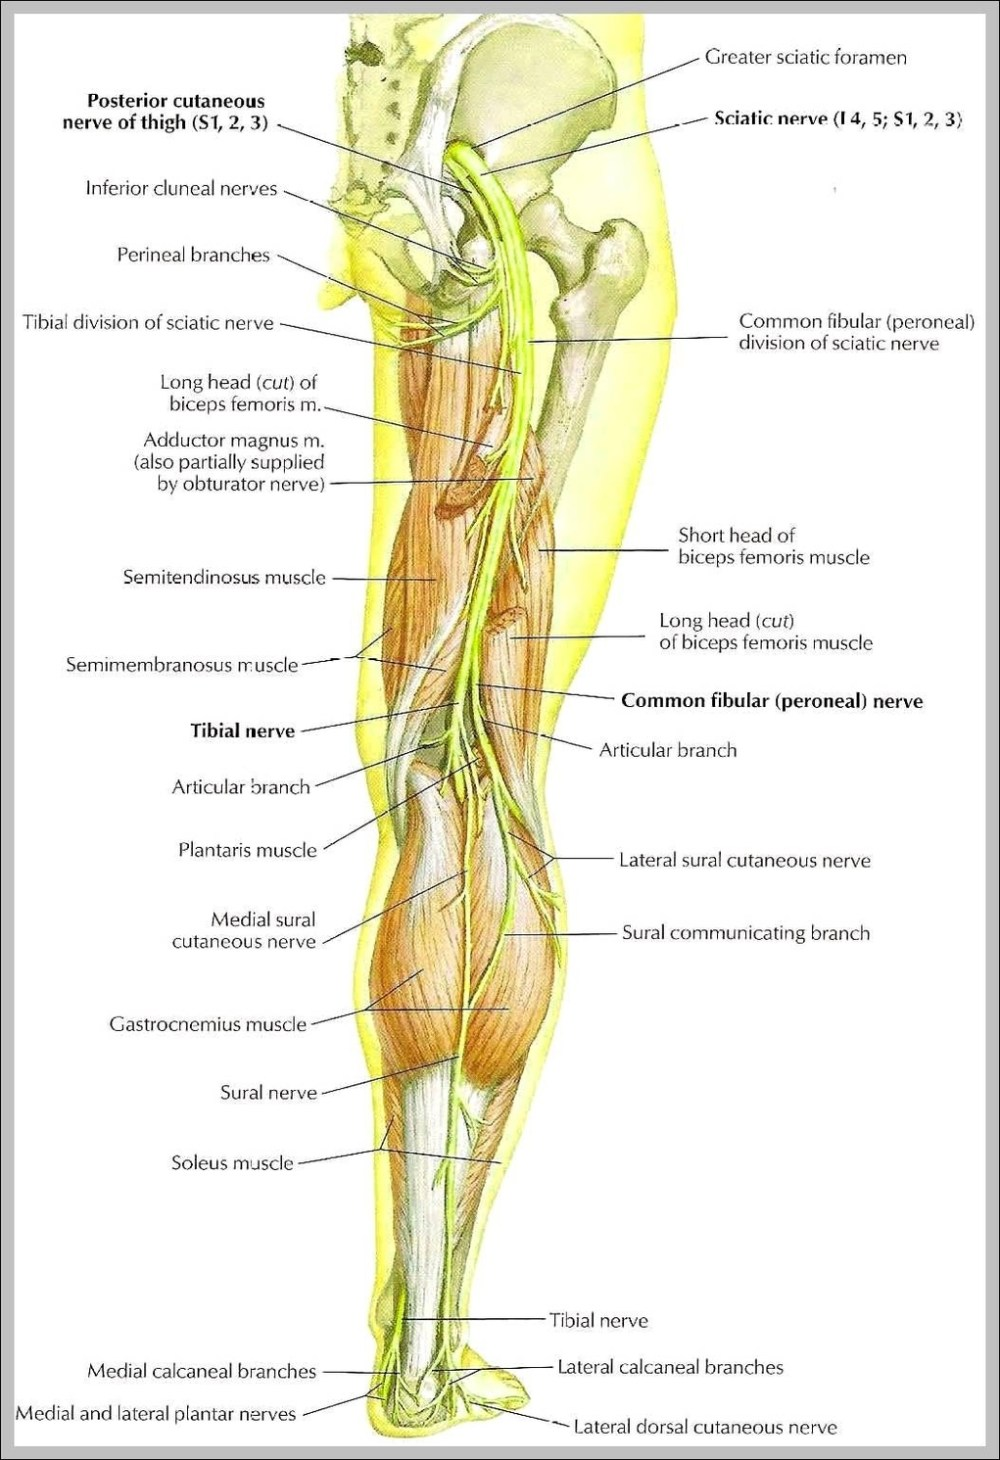 medium resolution of sciatic nerve picture diagram sciatic nerve picture chart human anatomy diagrams and charts explained this diagram depicts sciatic nerve picture with